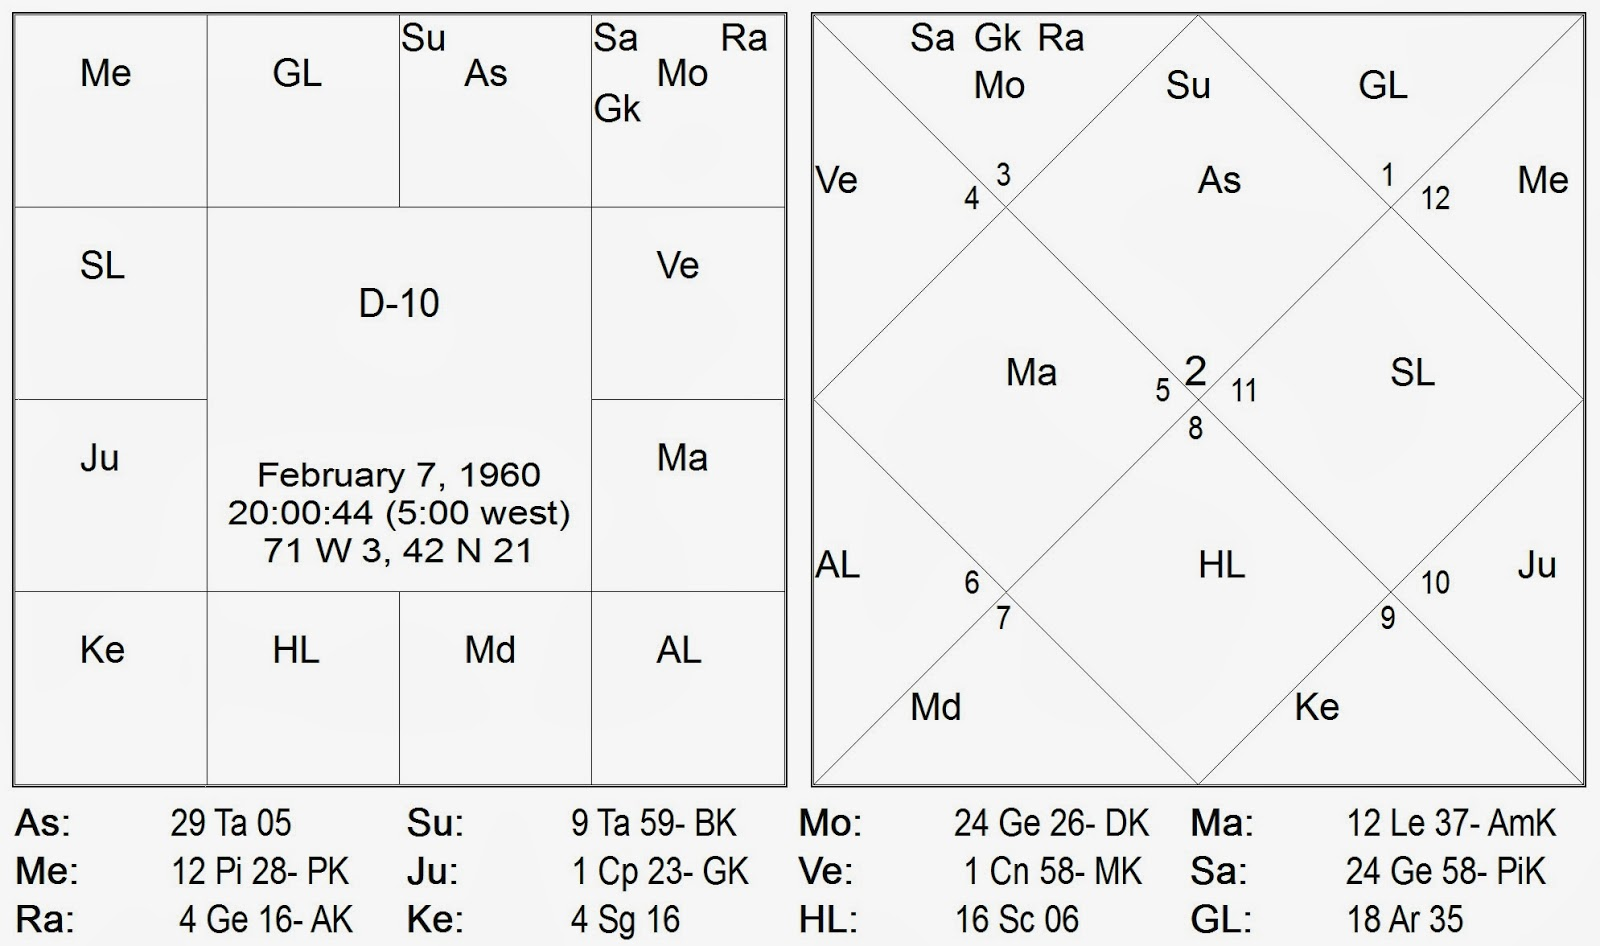 The 10th lord of the r i chakra venus is the lagna lord here with sun the r i chakra lagna lord being in lagna there is a strong destiny connection